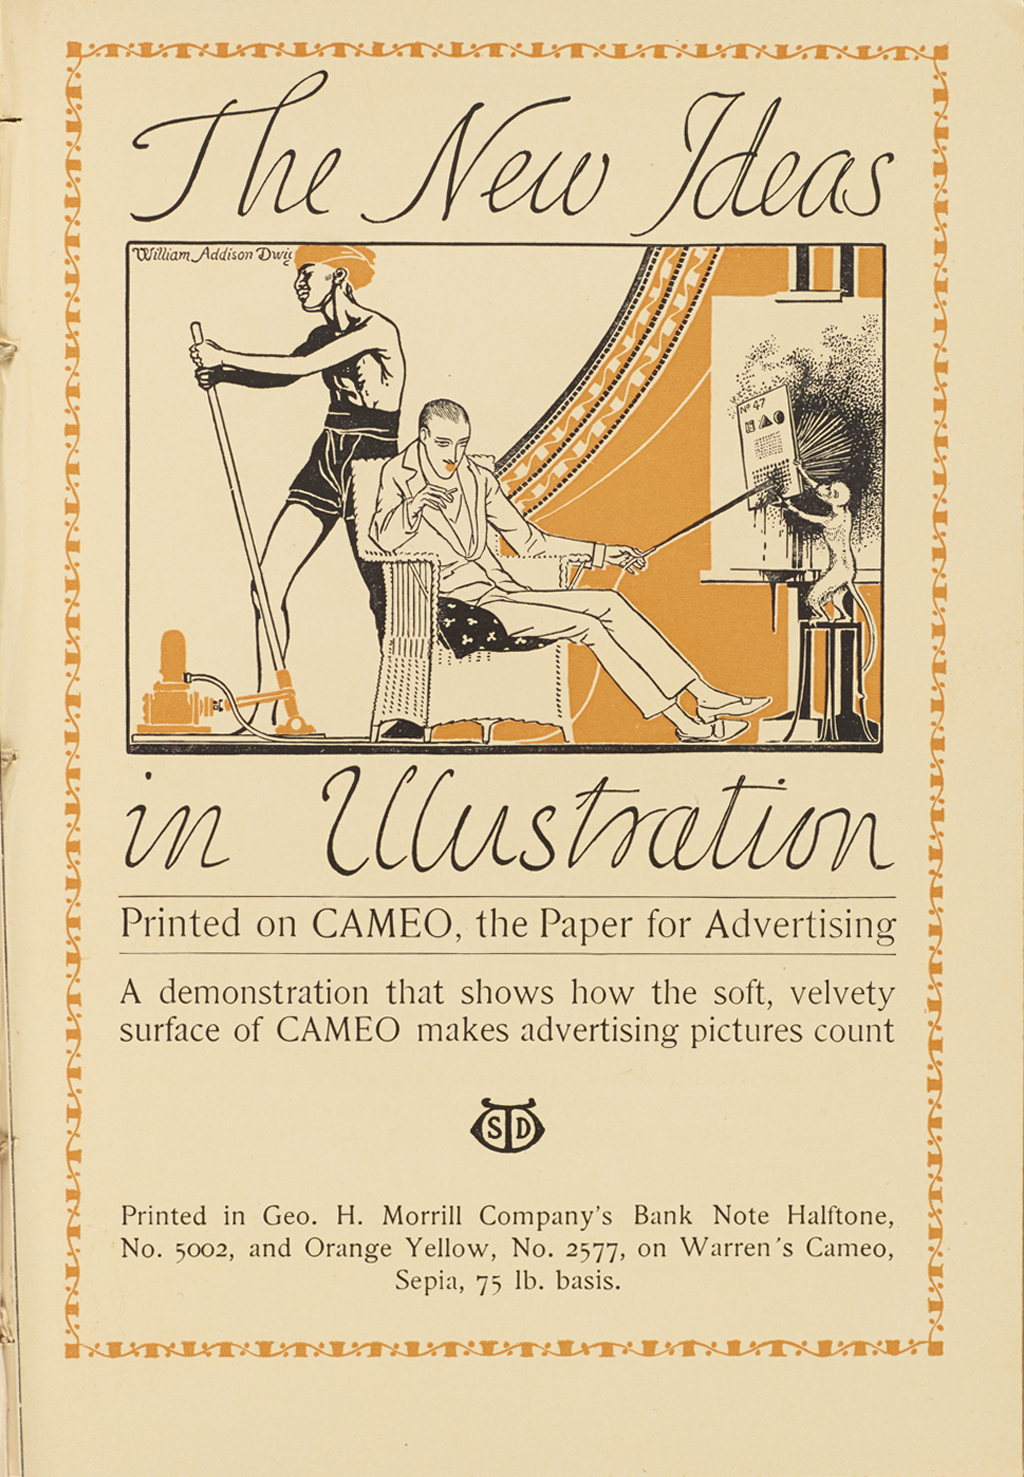 """New Ideas in Illustration"" advertisement by S.D. Warren Co. (Print, vol. V, no. 4, 1915). Illustration and lettering by W.A. Dwiggins."